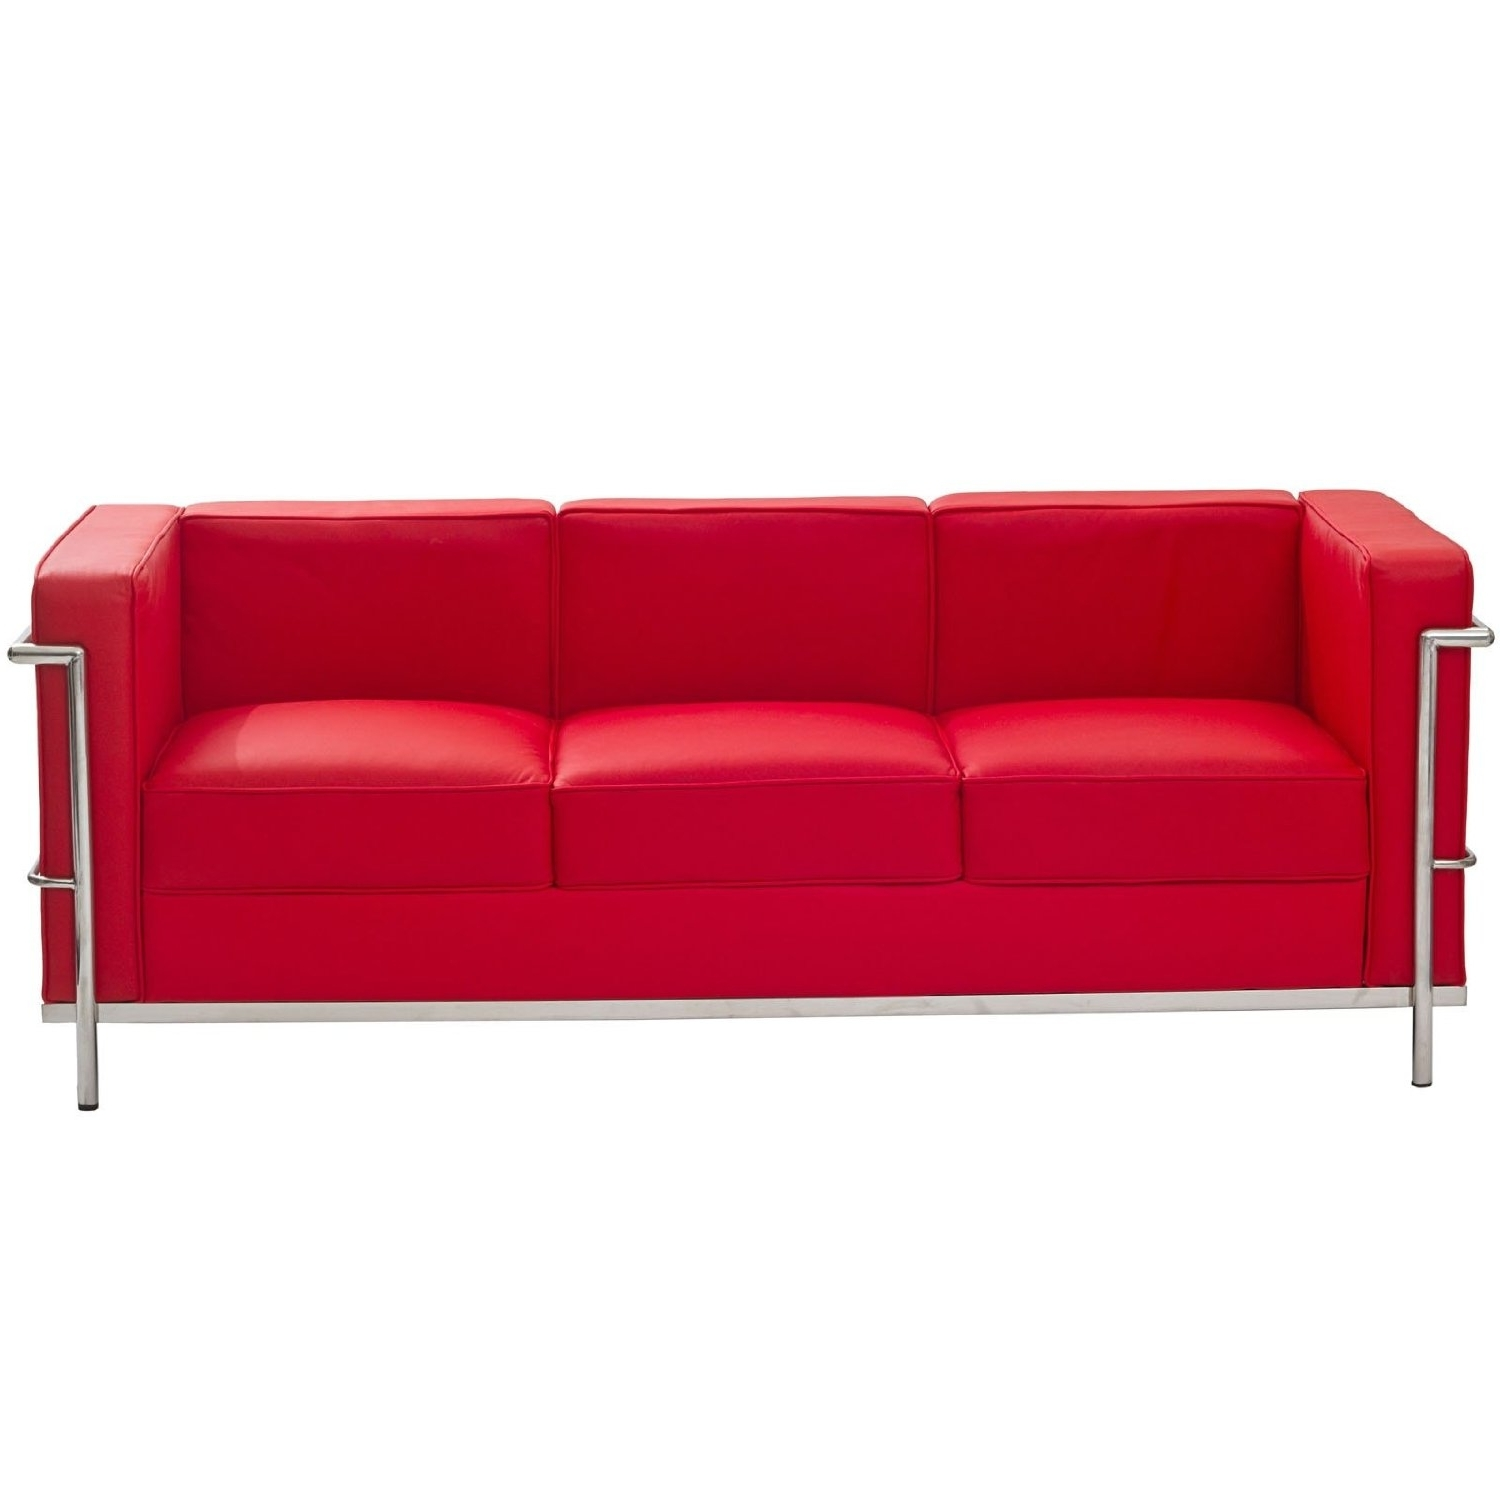 Most Current Furniture: Cool Red Leather Couches Chrome Base Finish For Modern Intended For Red Leather Couches (View 11 of 15)